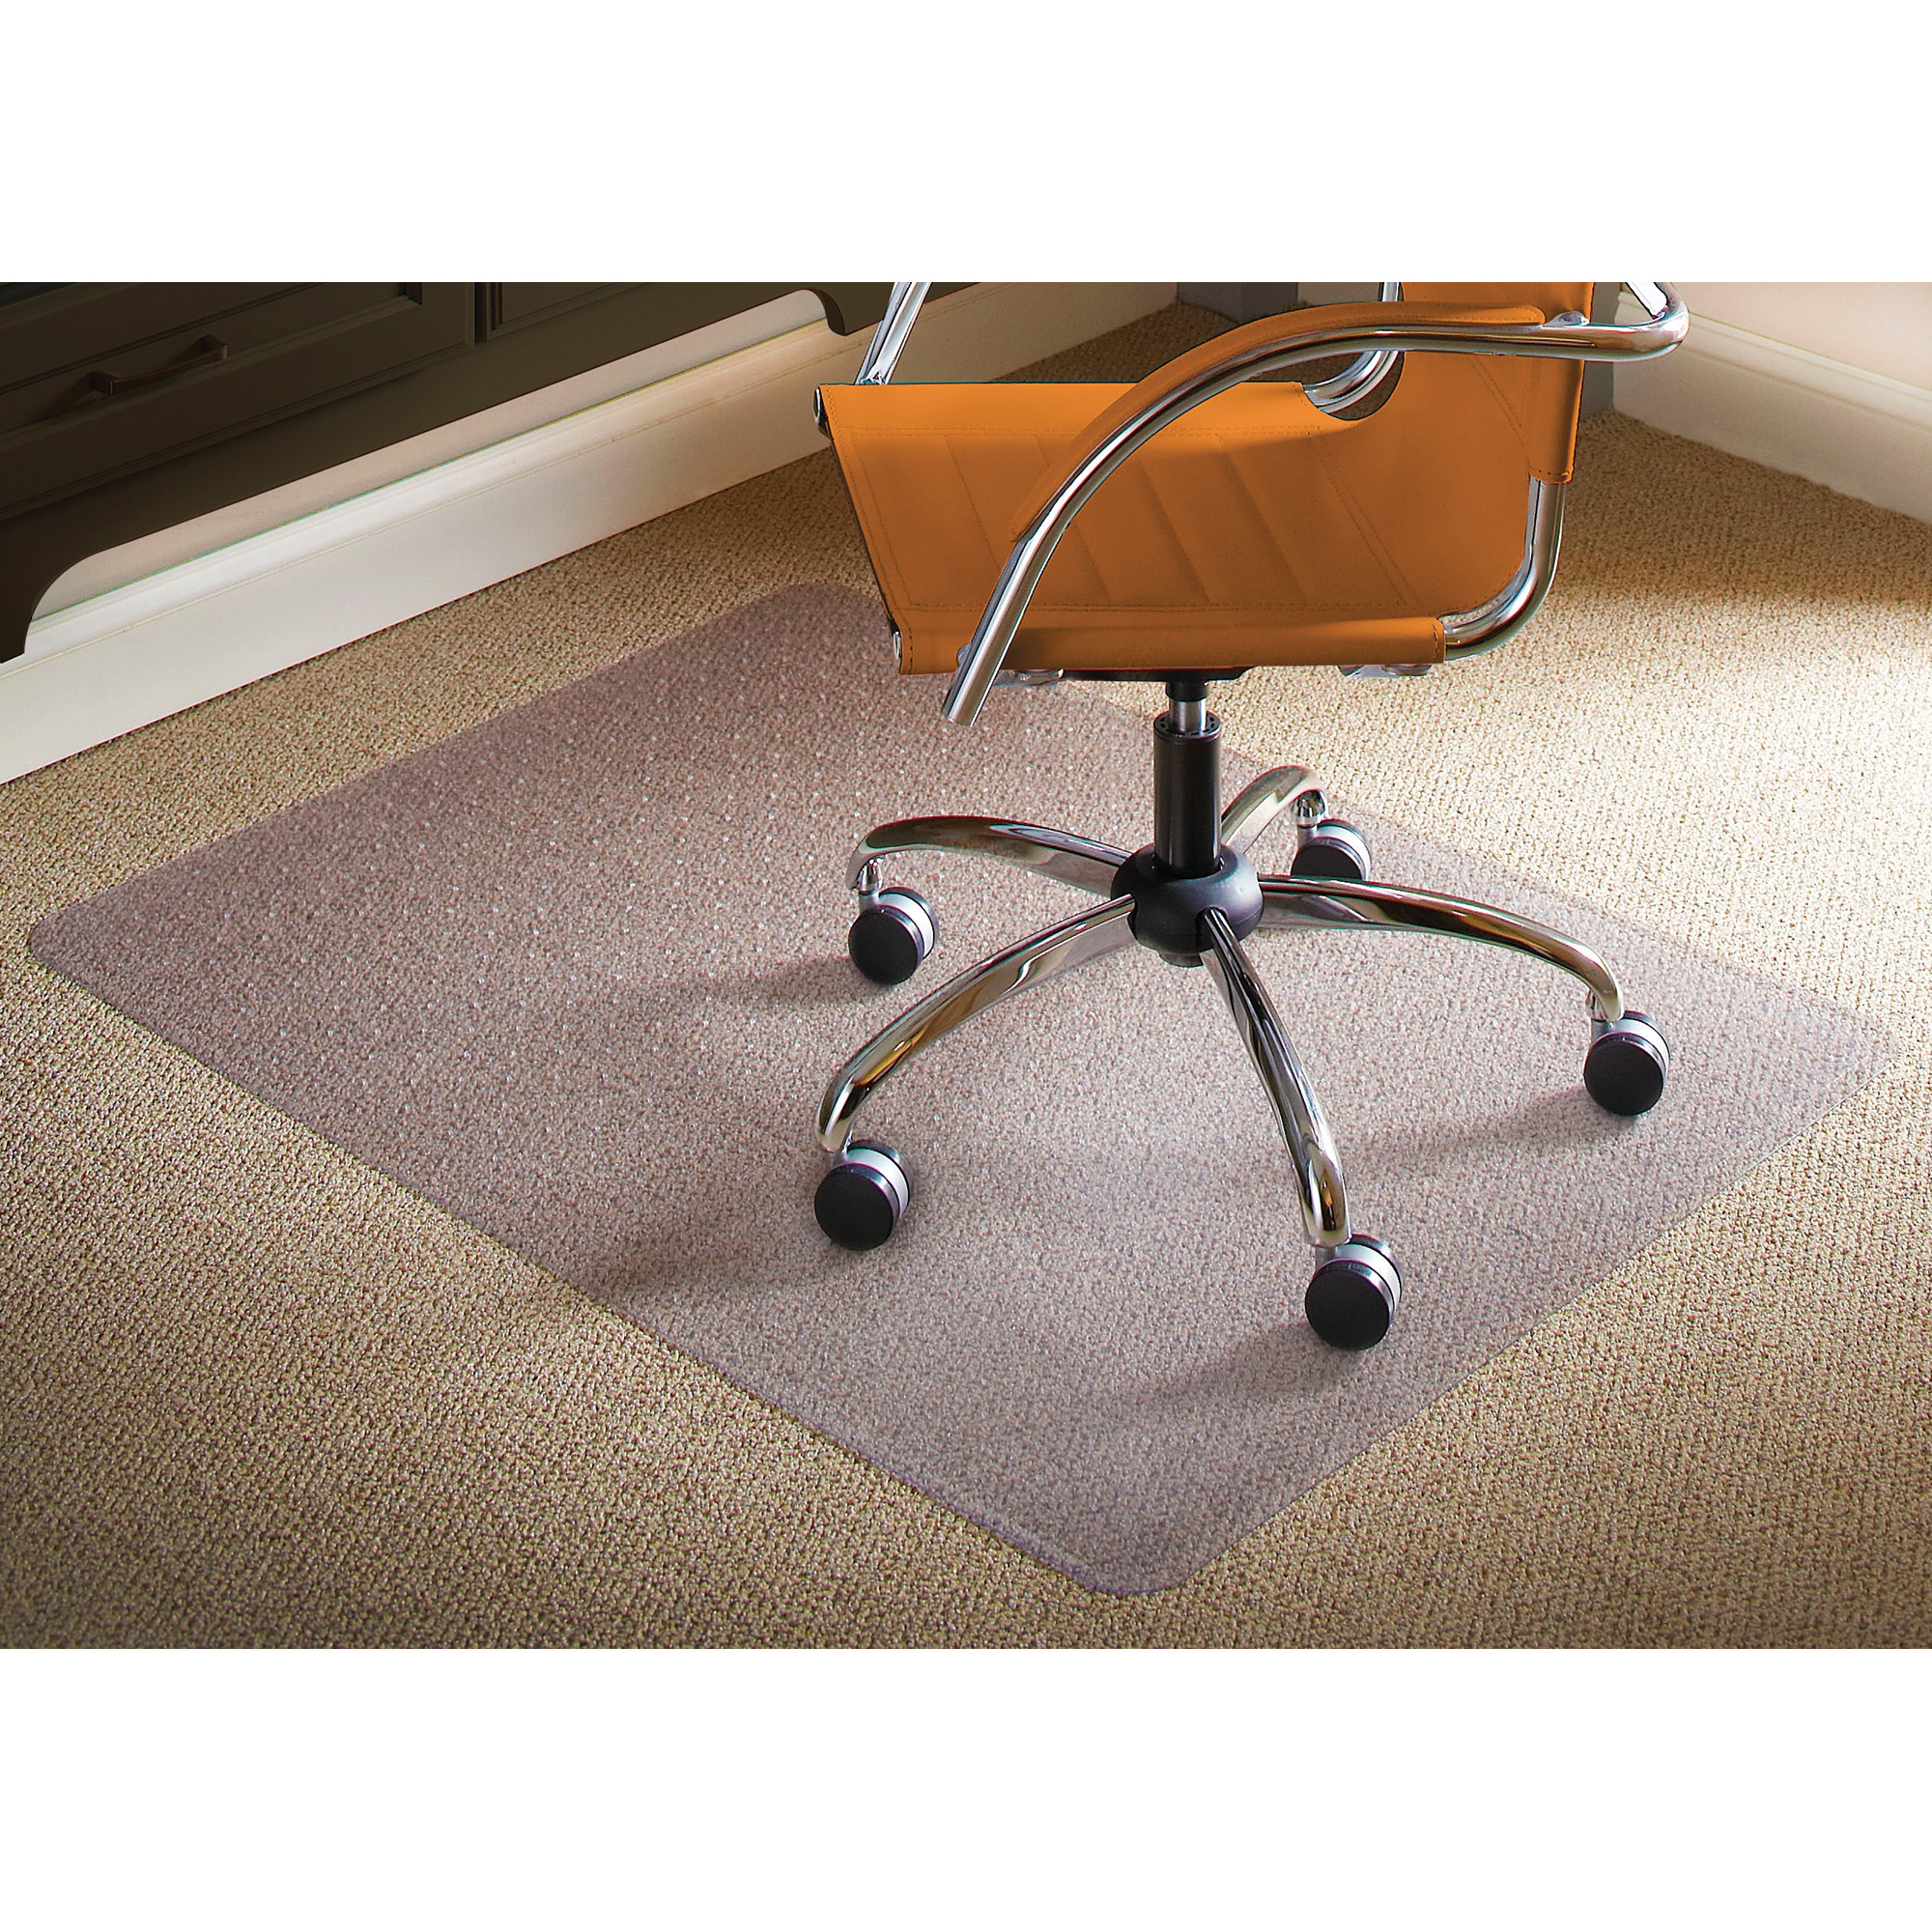 ES Robbins Natural Origins 46 x 60 Chair Mat for Low Pile Carpet Rectangular - Walmart.com  sc 1 st  Walmart & ES Robbins Natural Origins 46 x 60 Chair Mat for Low Pile Carpet ...